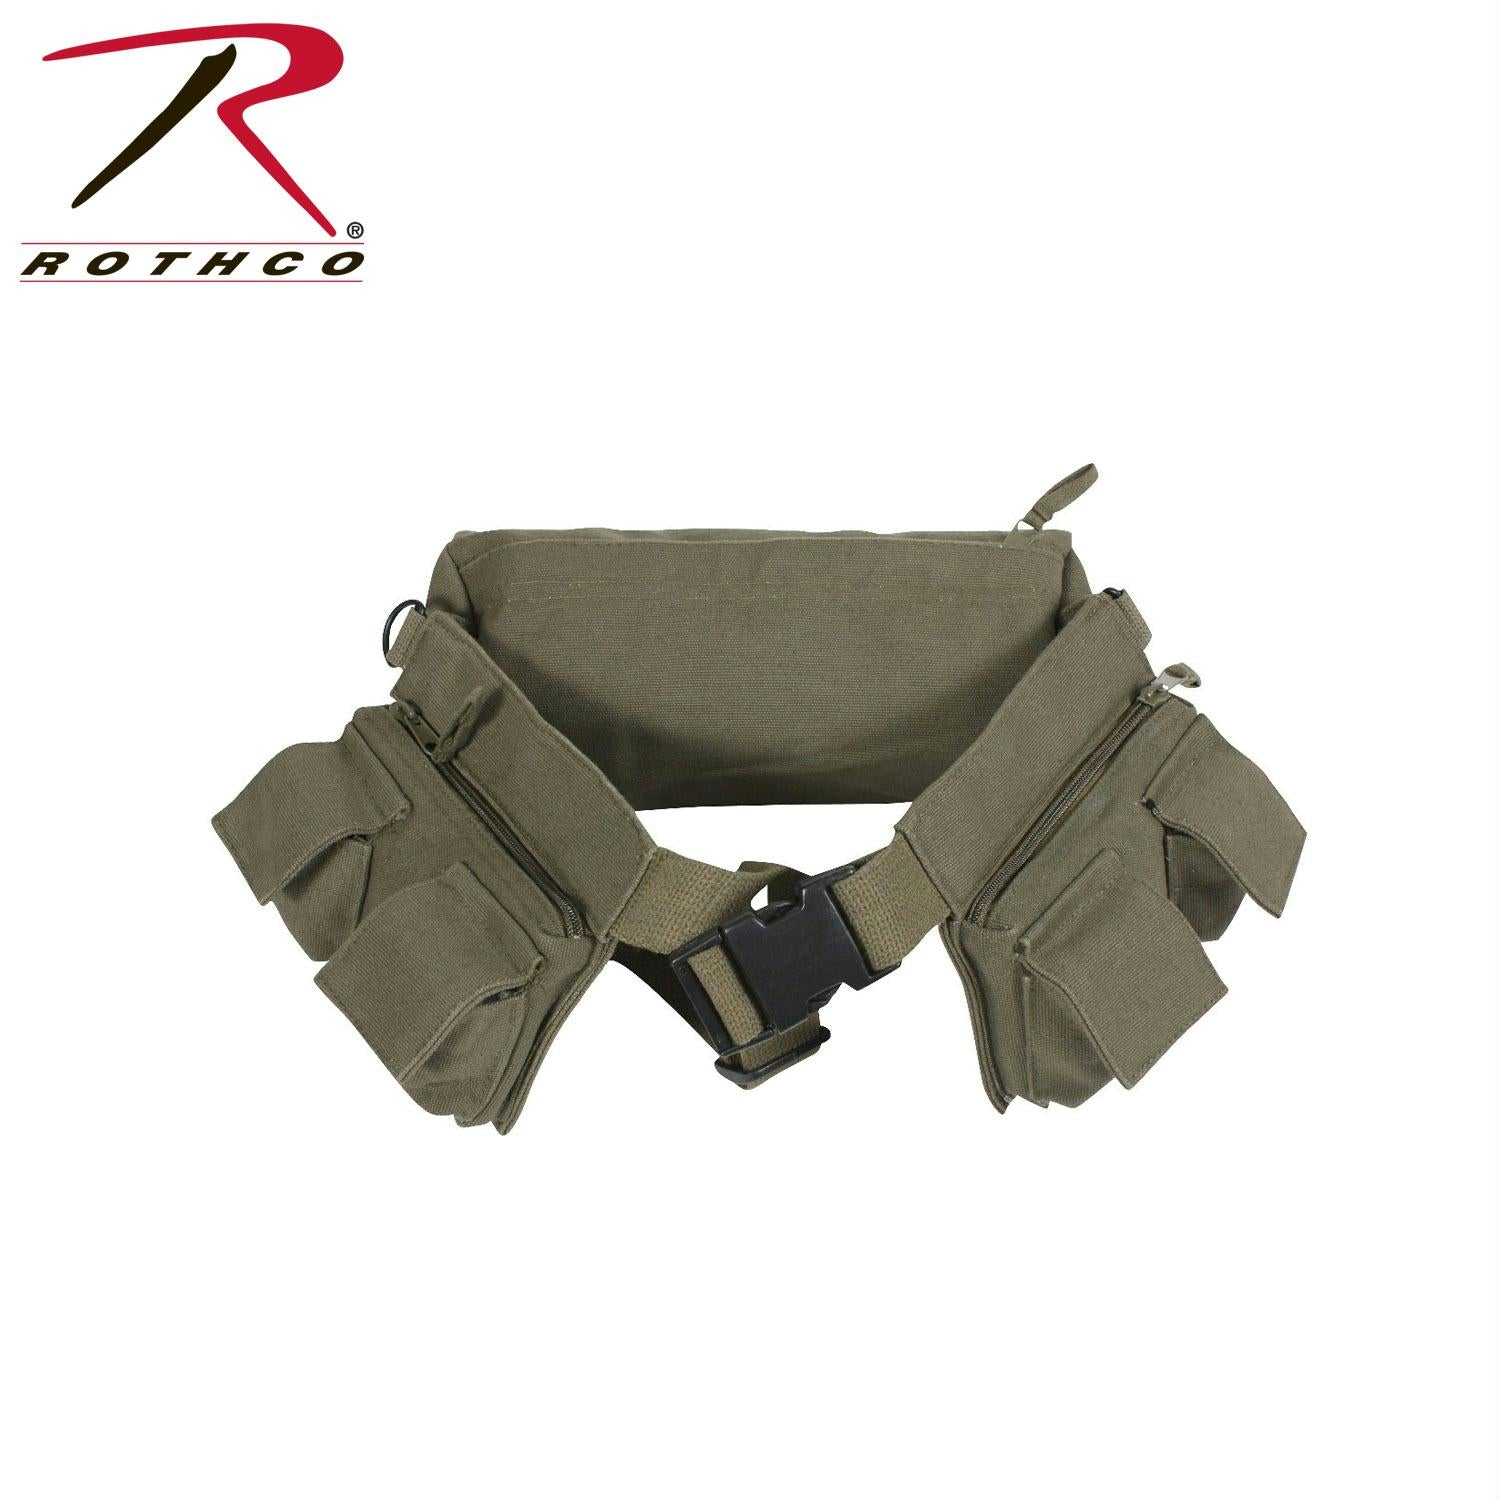 Rothco Canvas 7 Pocket Fanny Pack - Olive Drab